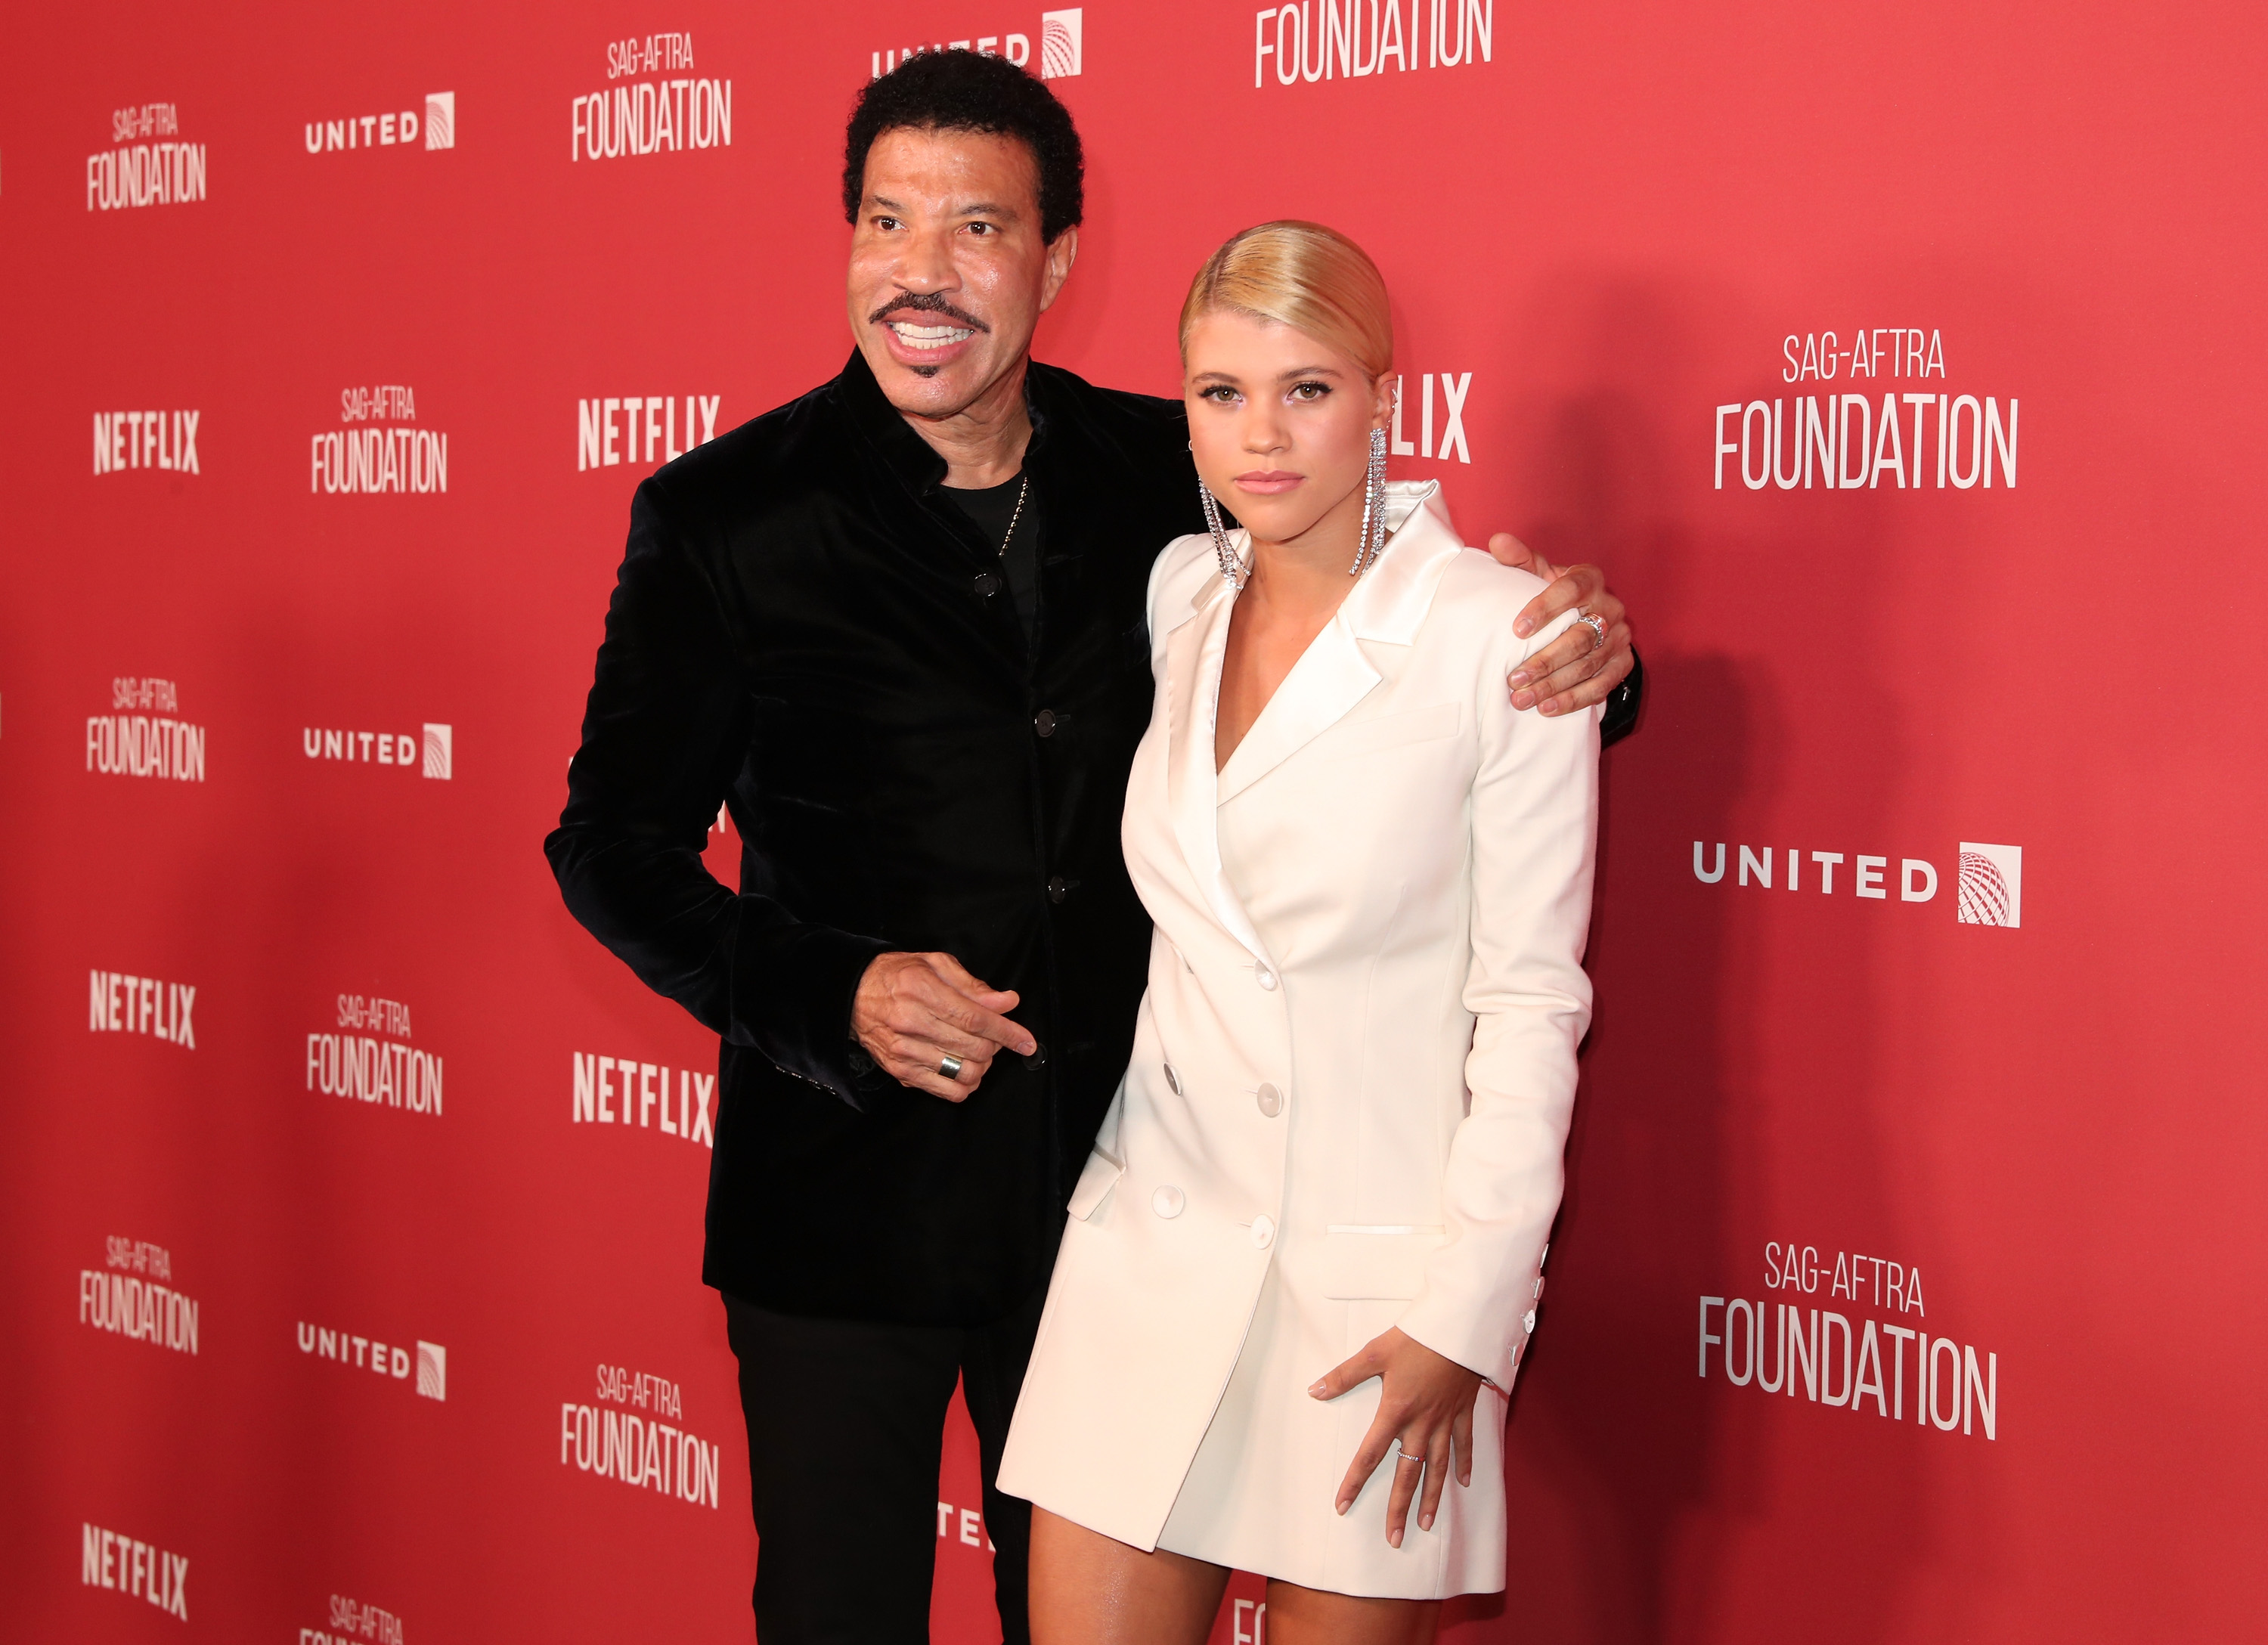 Lionel Richie and Sofia Richie